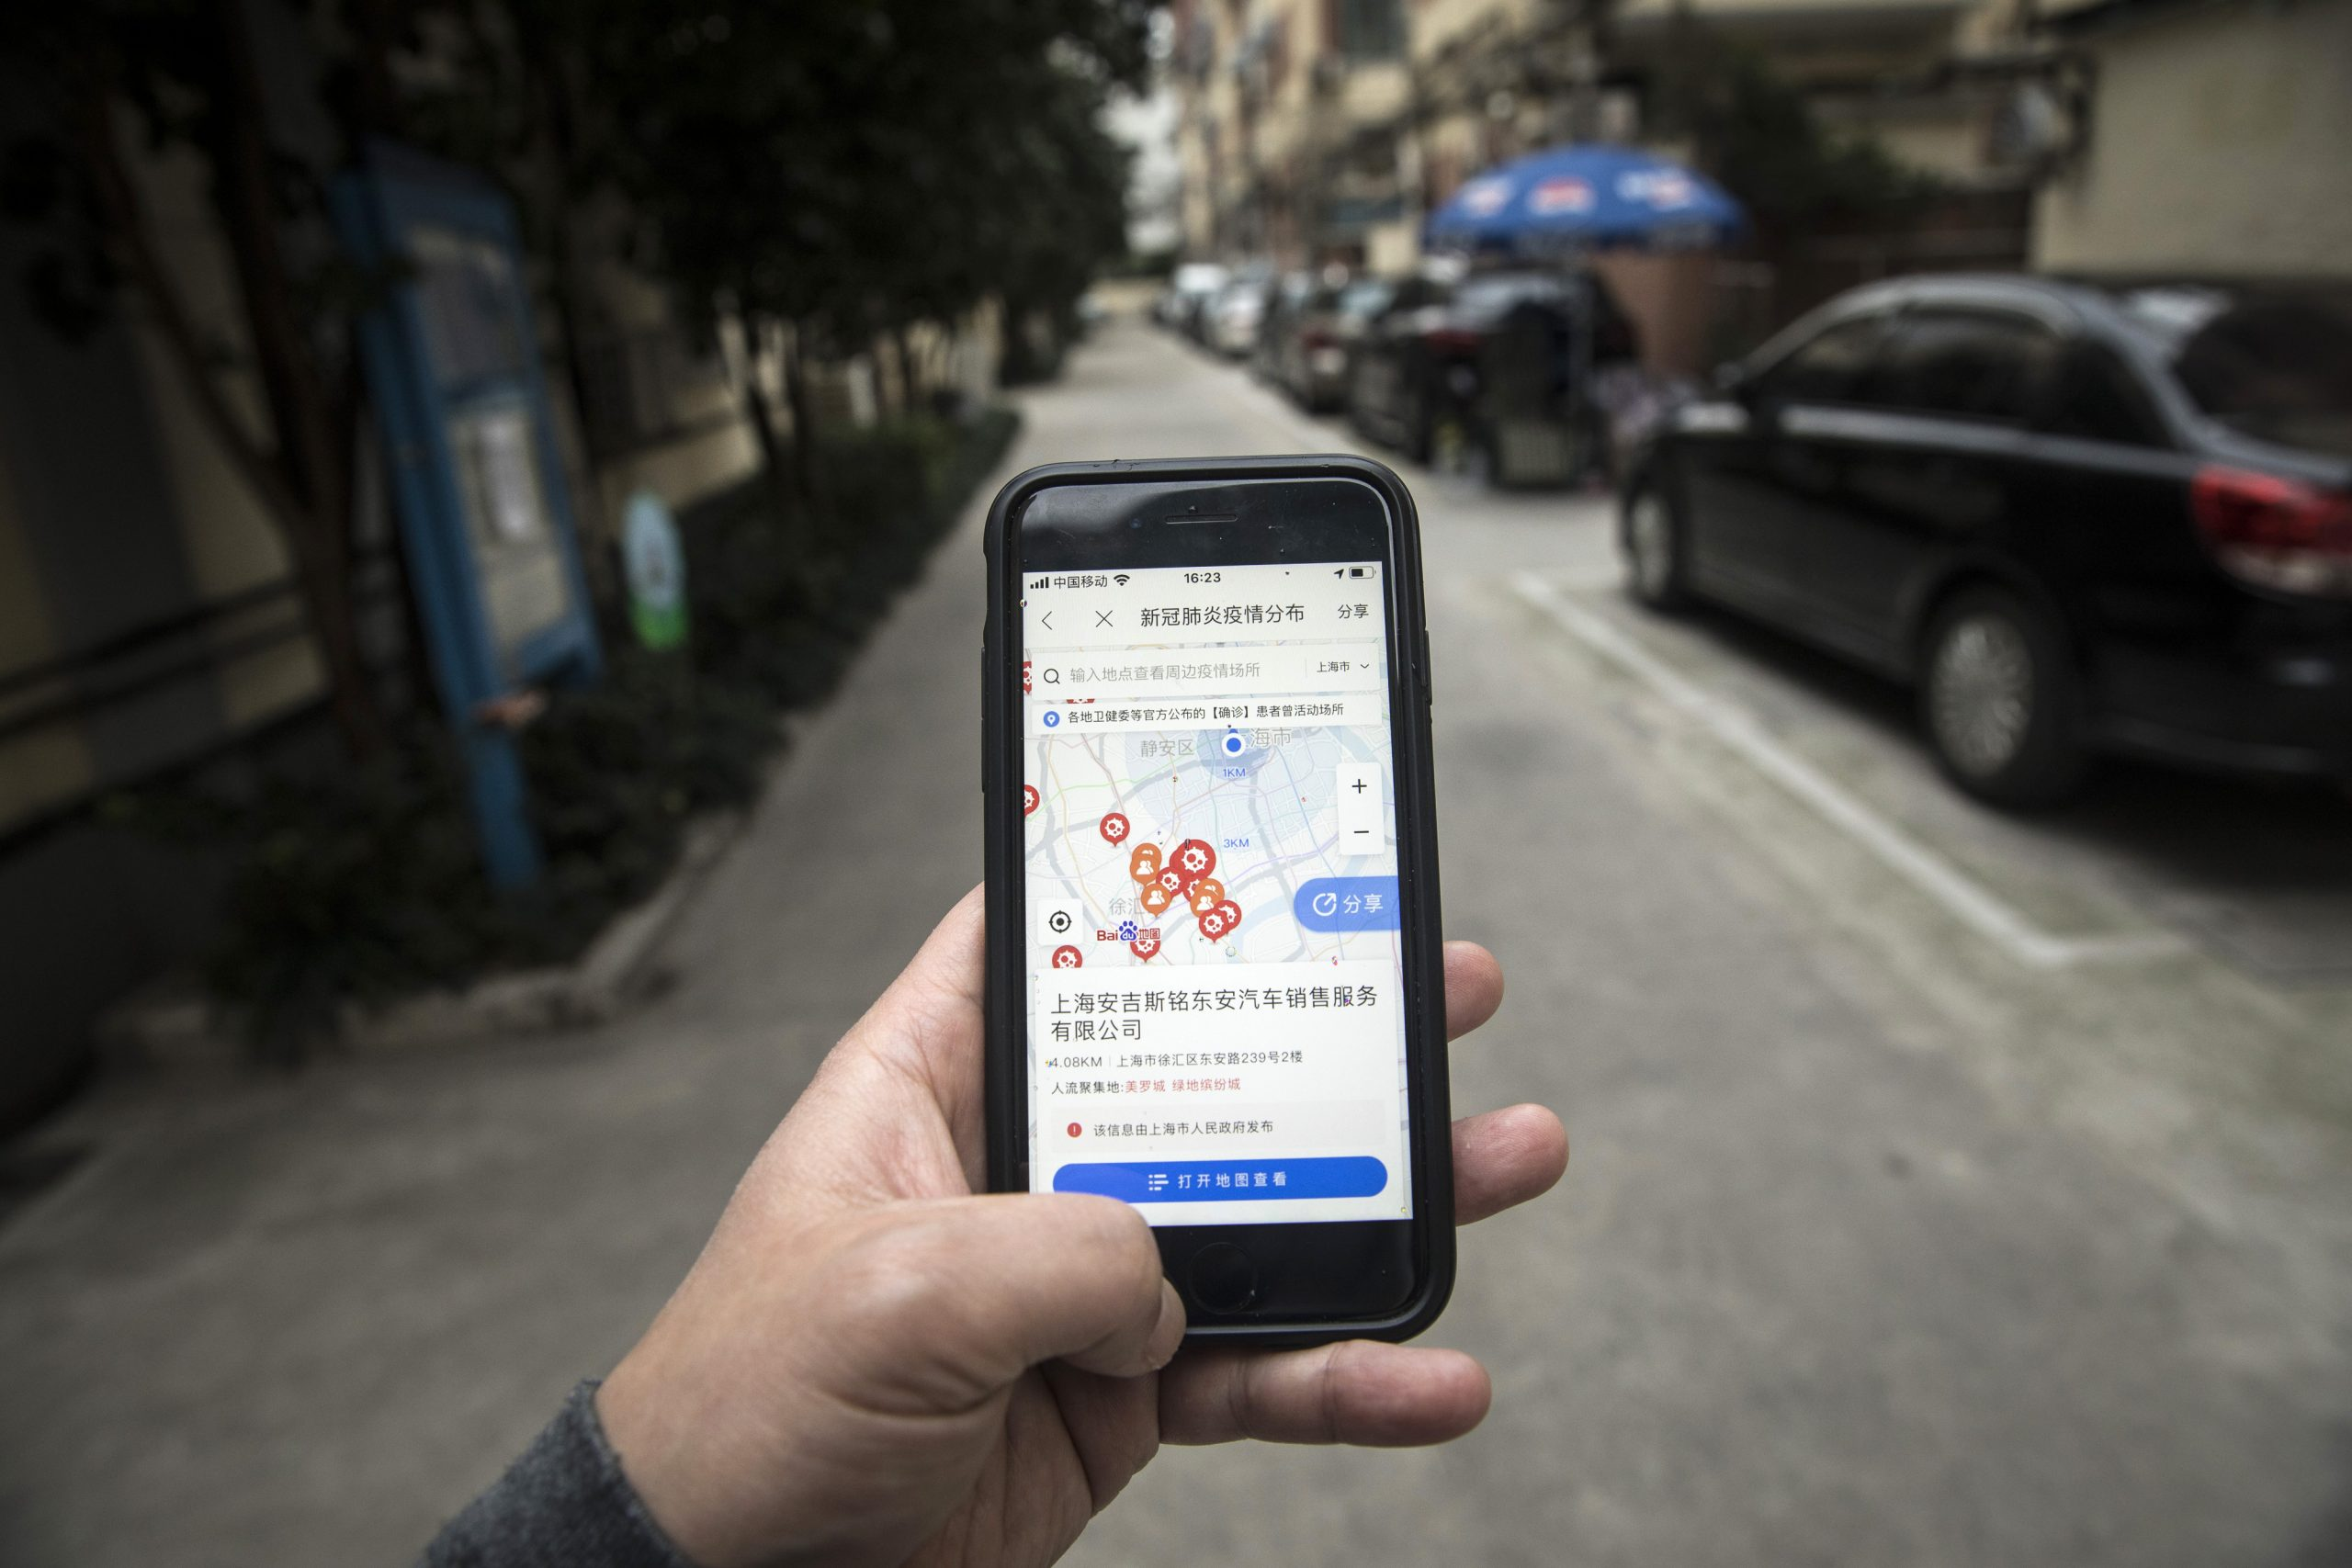 China Uses Surveillance State Tactics to Fight Spread of Virus